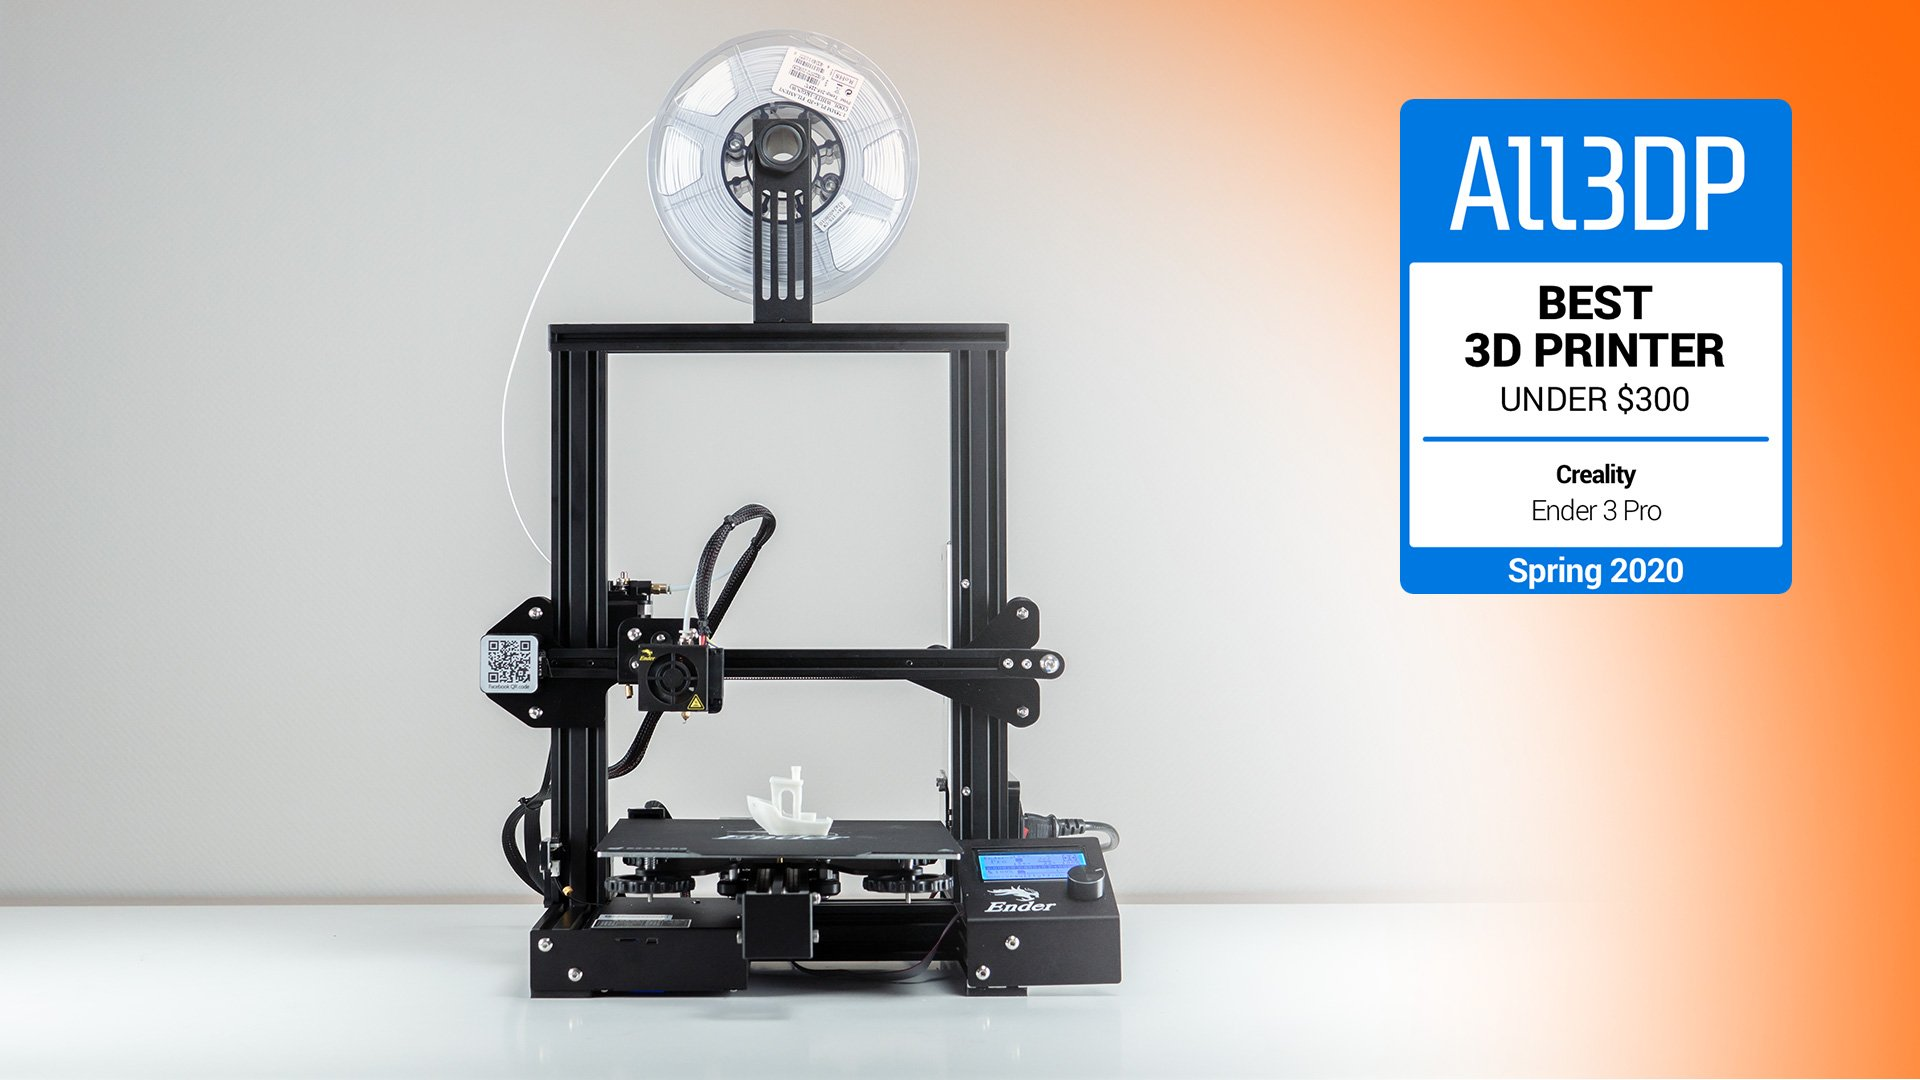 Creality Ender 3 Pro Review: Great 3D Printer Under $300 | All3DP